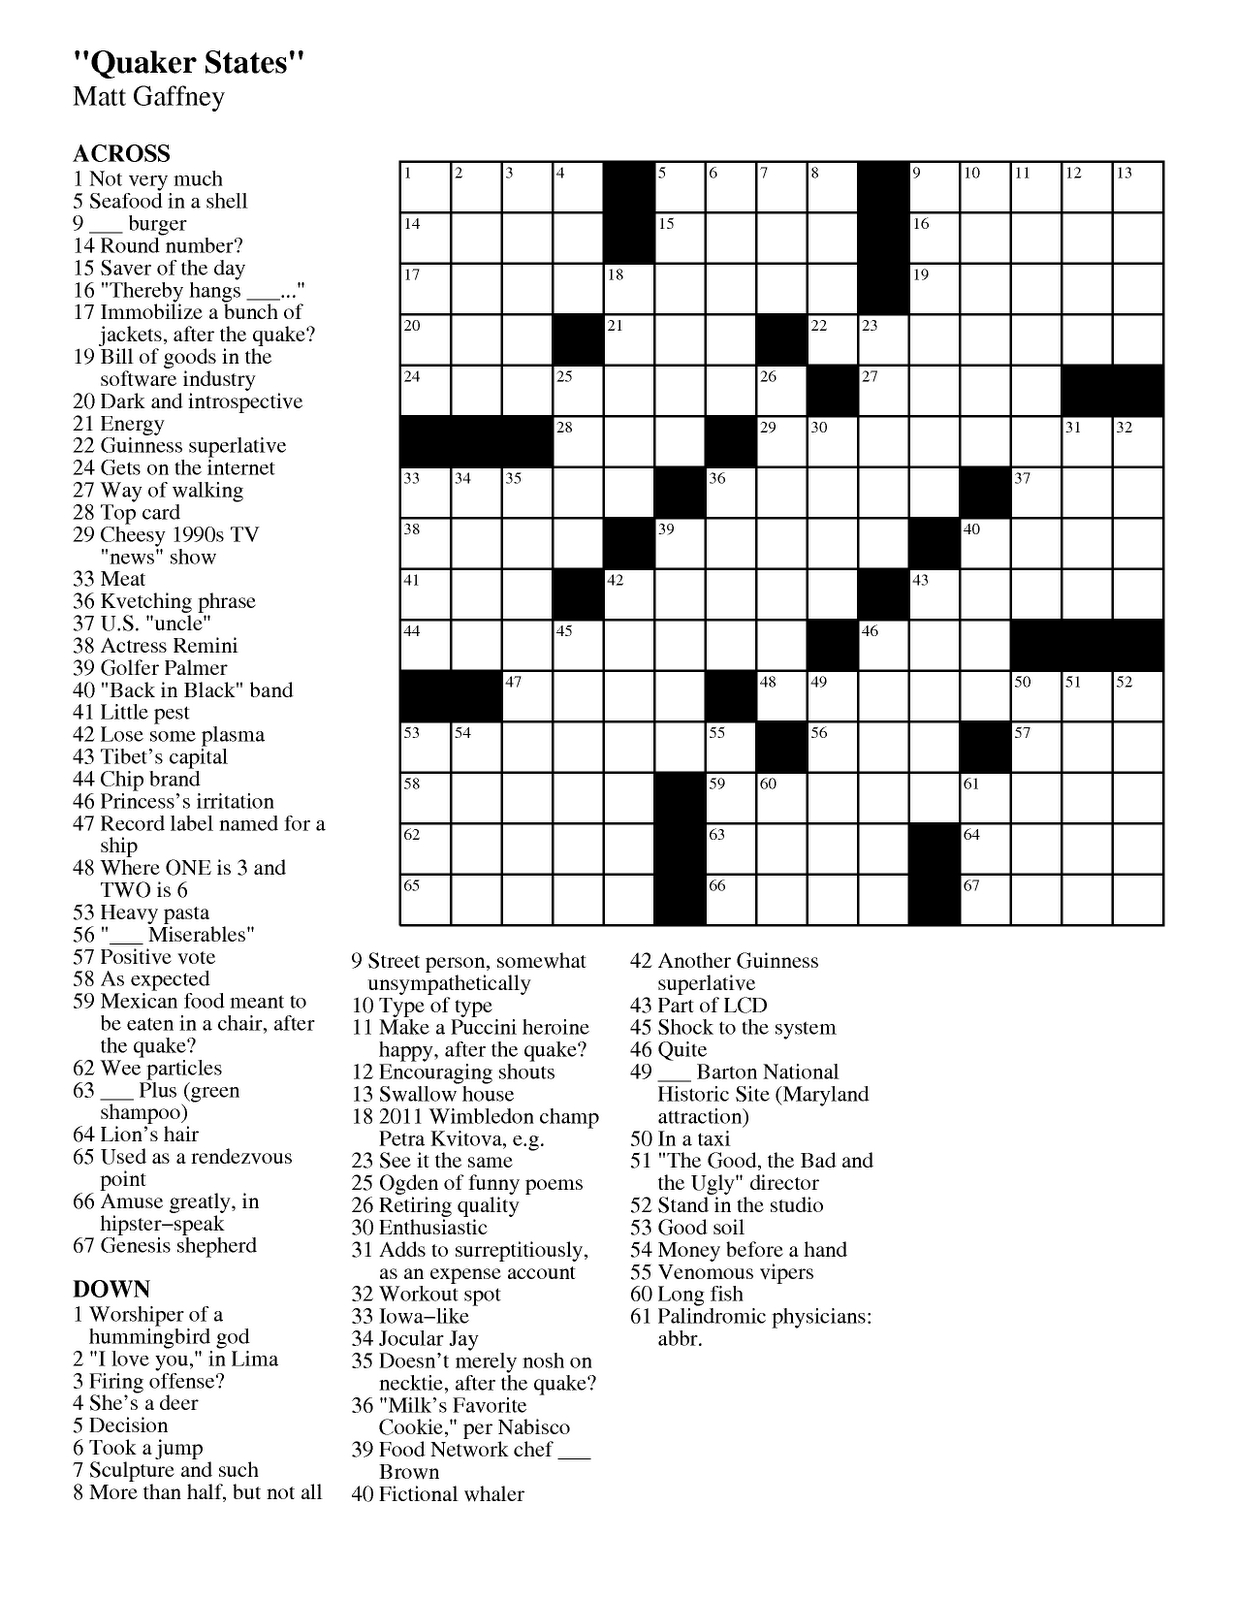 Summer Crossword Puzzle Printable Middle School Print Out - Summer Crossword Puzzle Free Printable